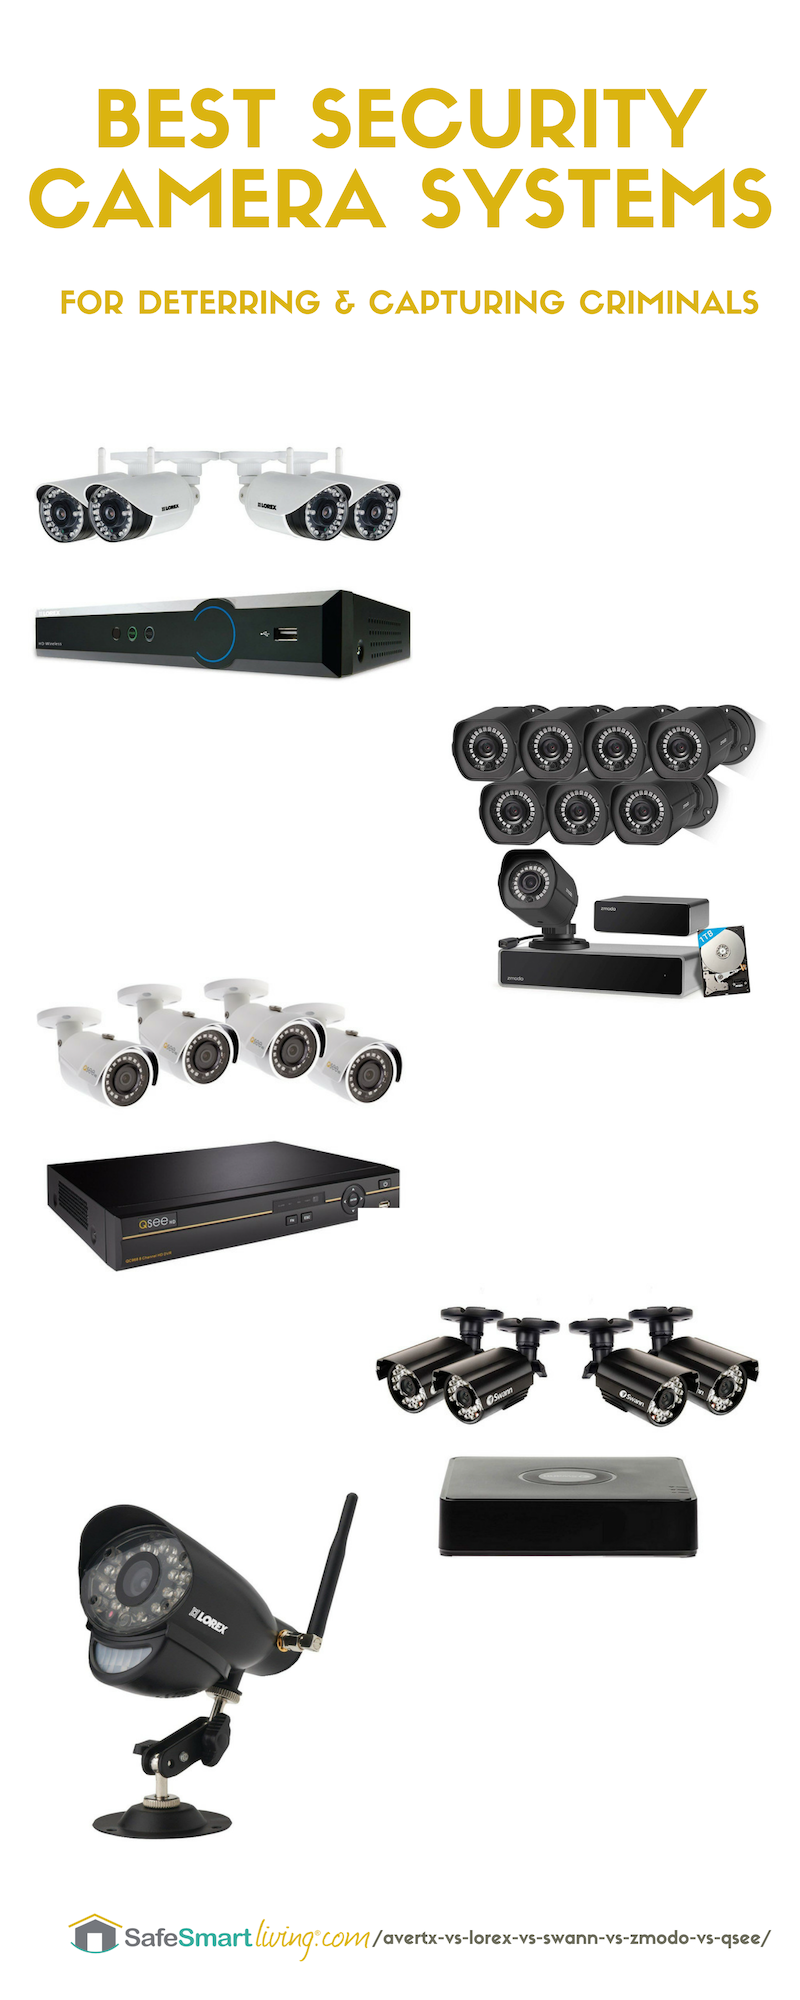 Best Security Camera Systems Reviewed Avertx Vs Lorex Vs Swann Etc Best Security Cameras Best Security Camera System Security Camera System